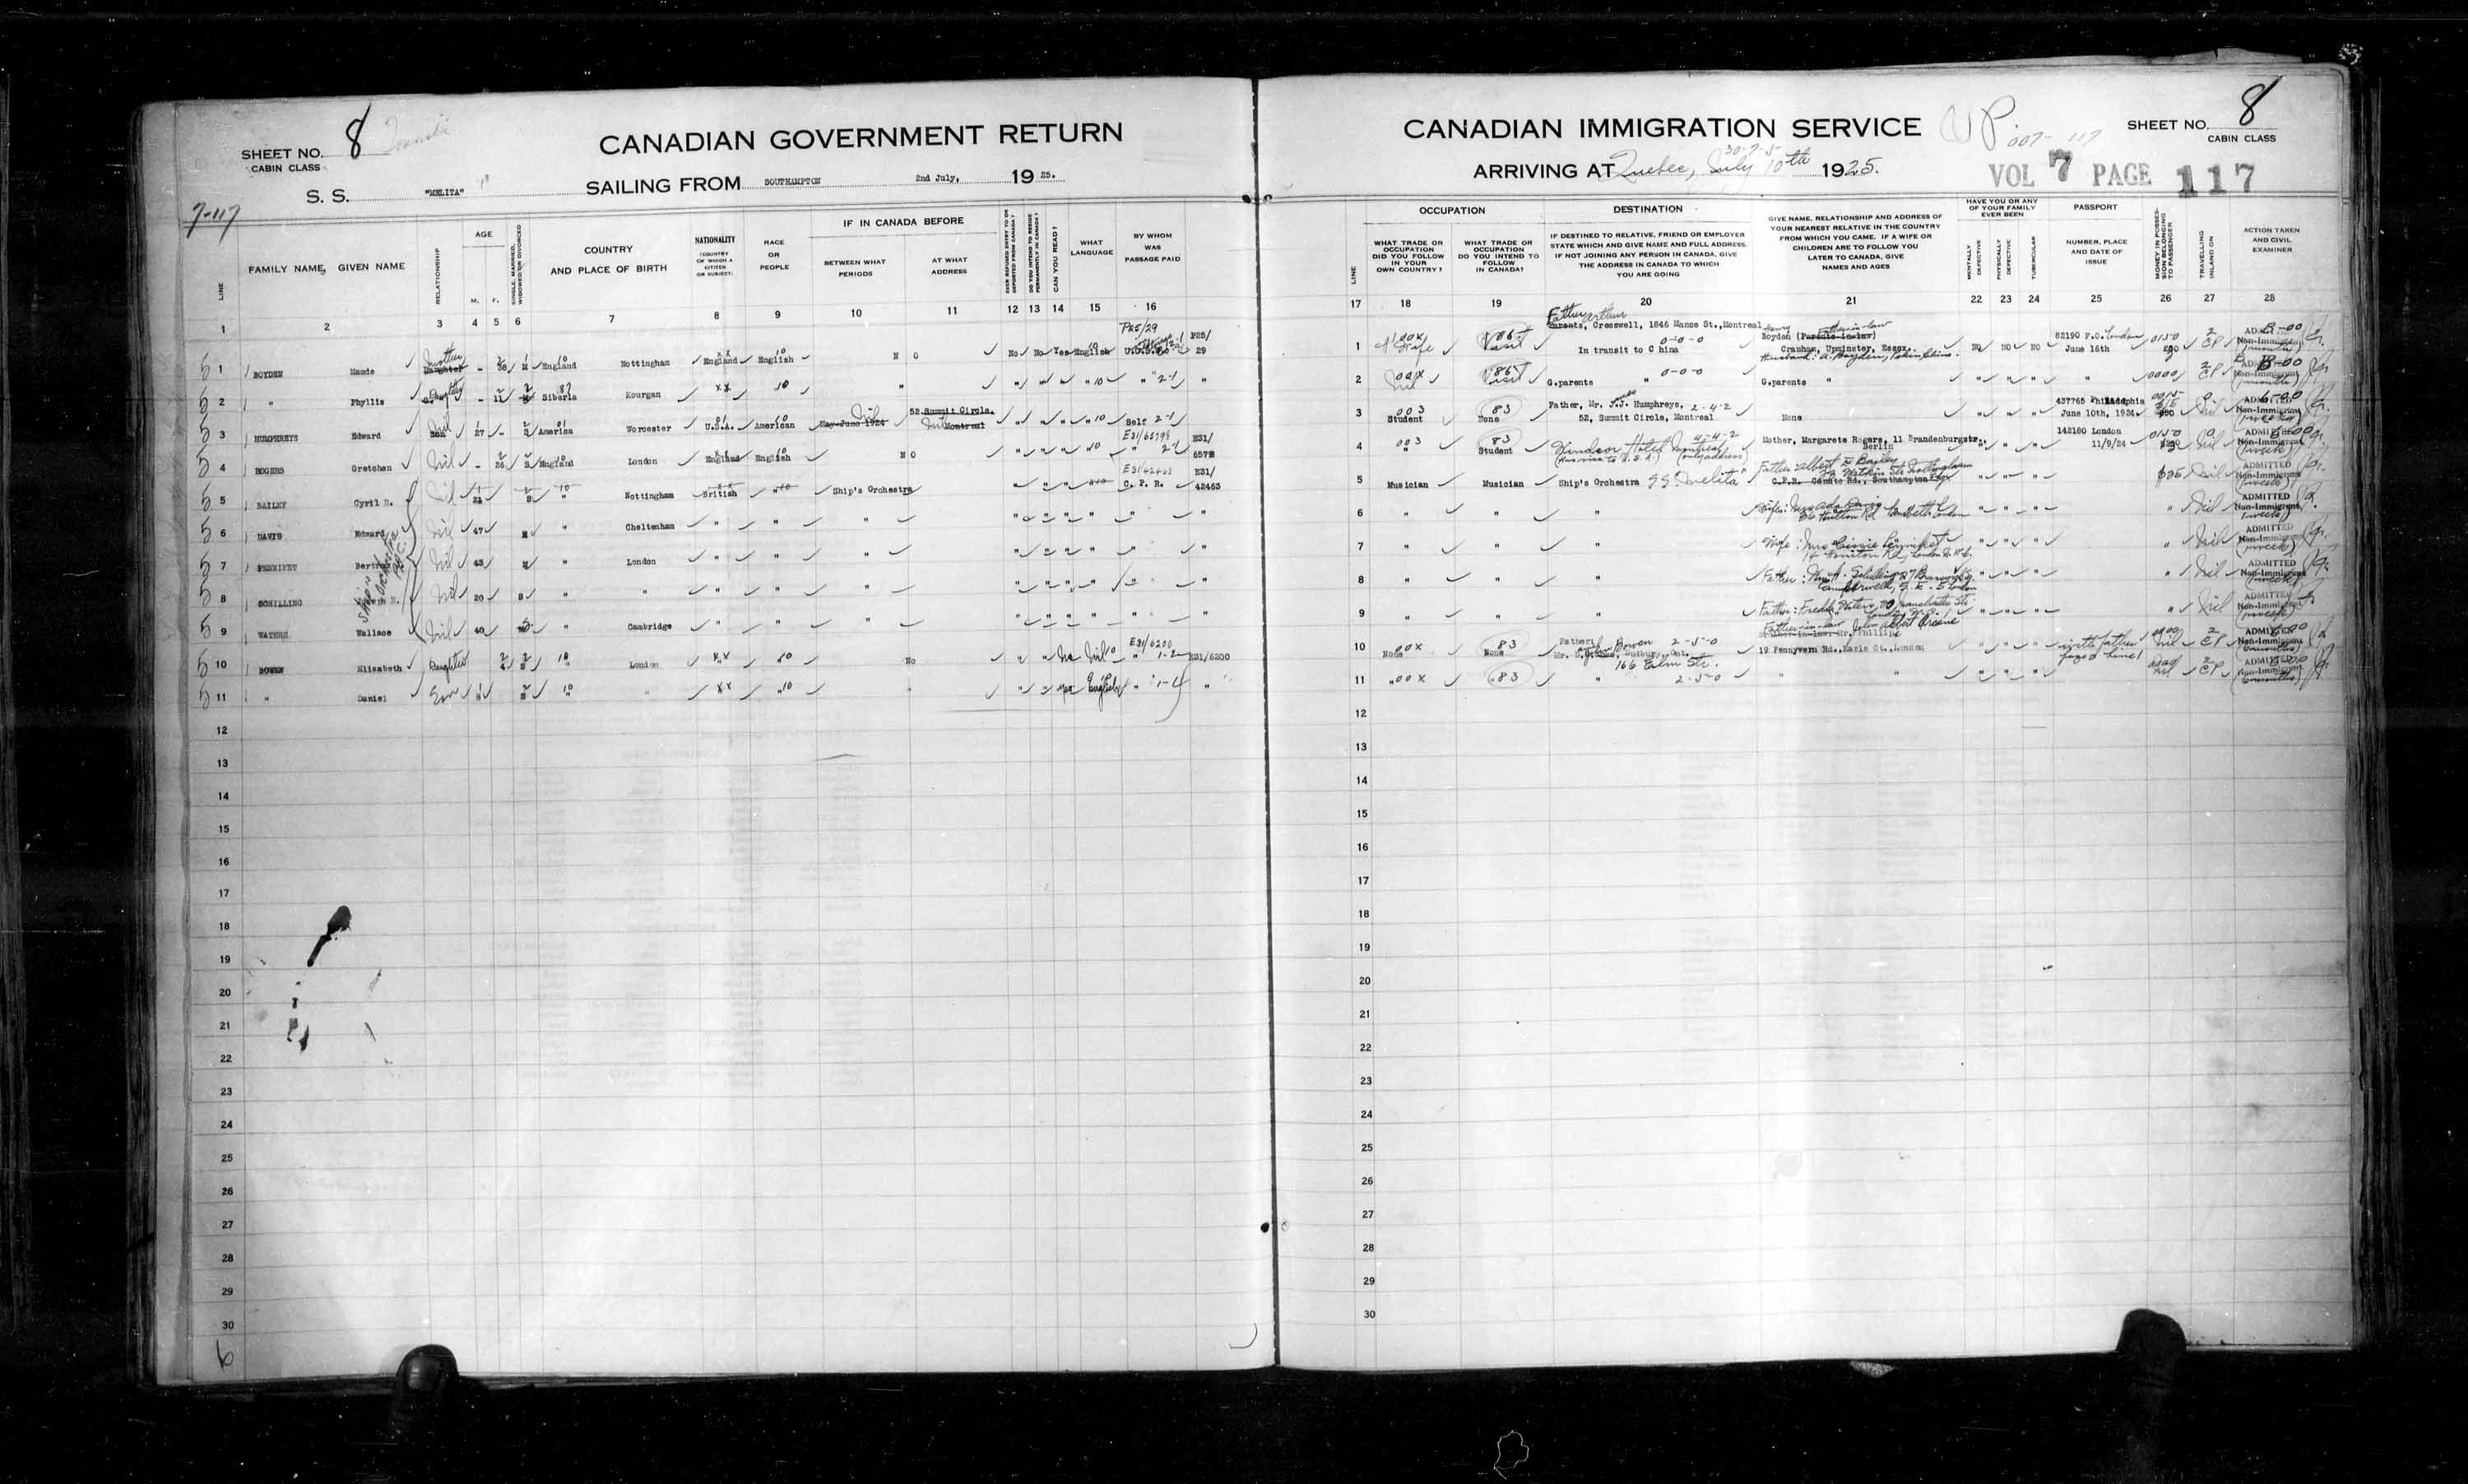 Title: Passenger Lists: Quebec City (1925-1935) - Mikan Number: 134839 - Microform: t-14717